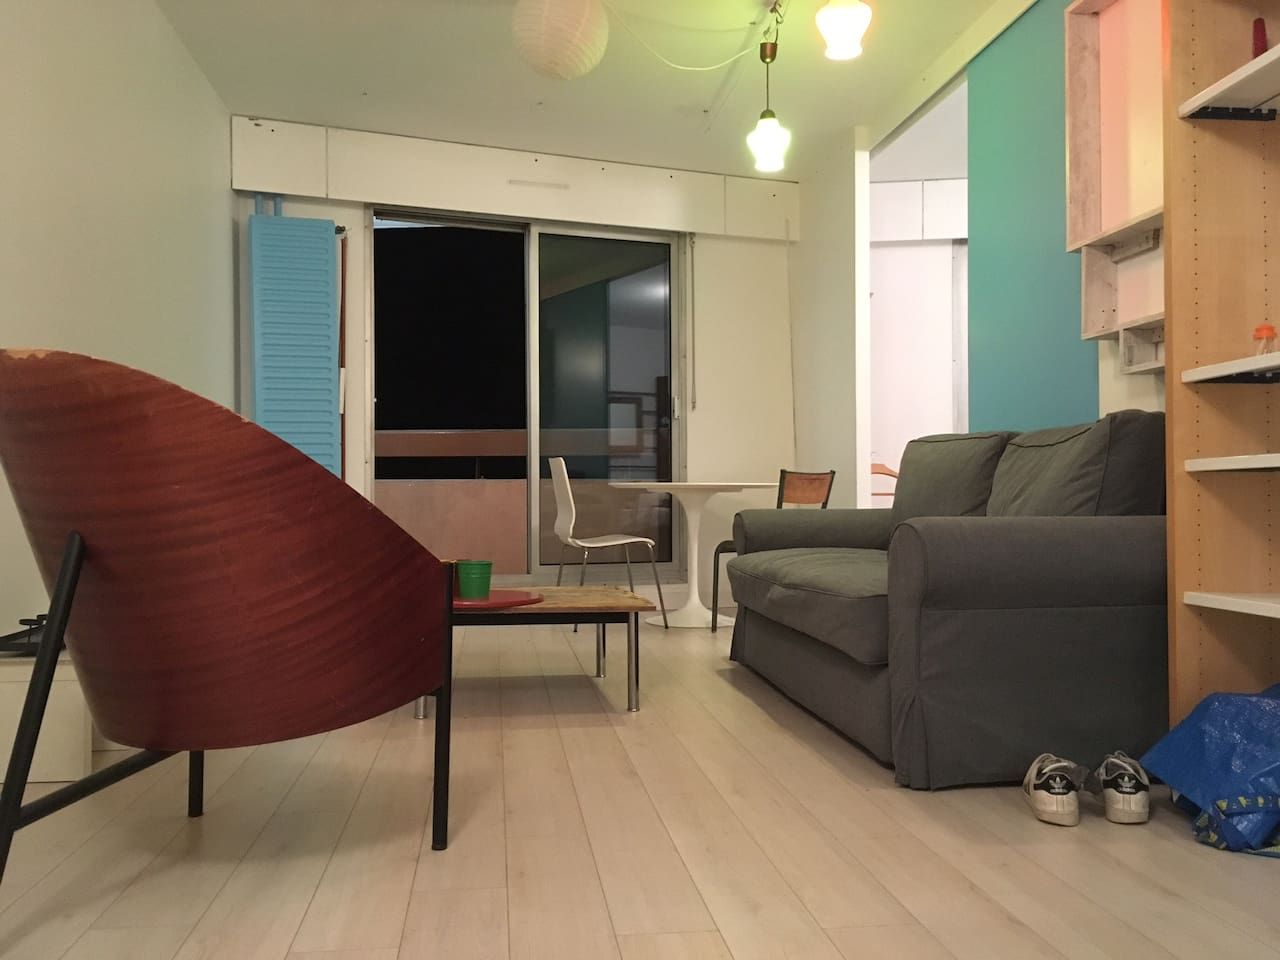 The living room, the part behind the sofa can be totally open or close, to make different kind of atmosphere, like little terrier or big loft,